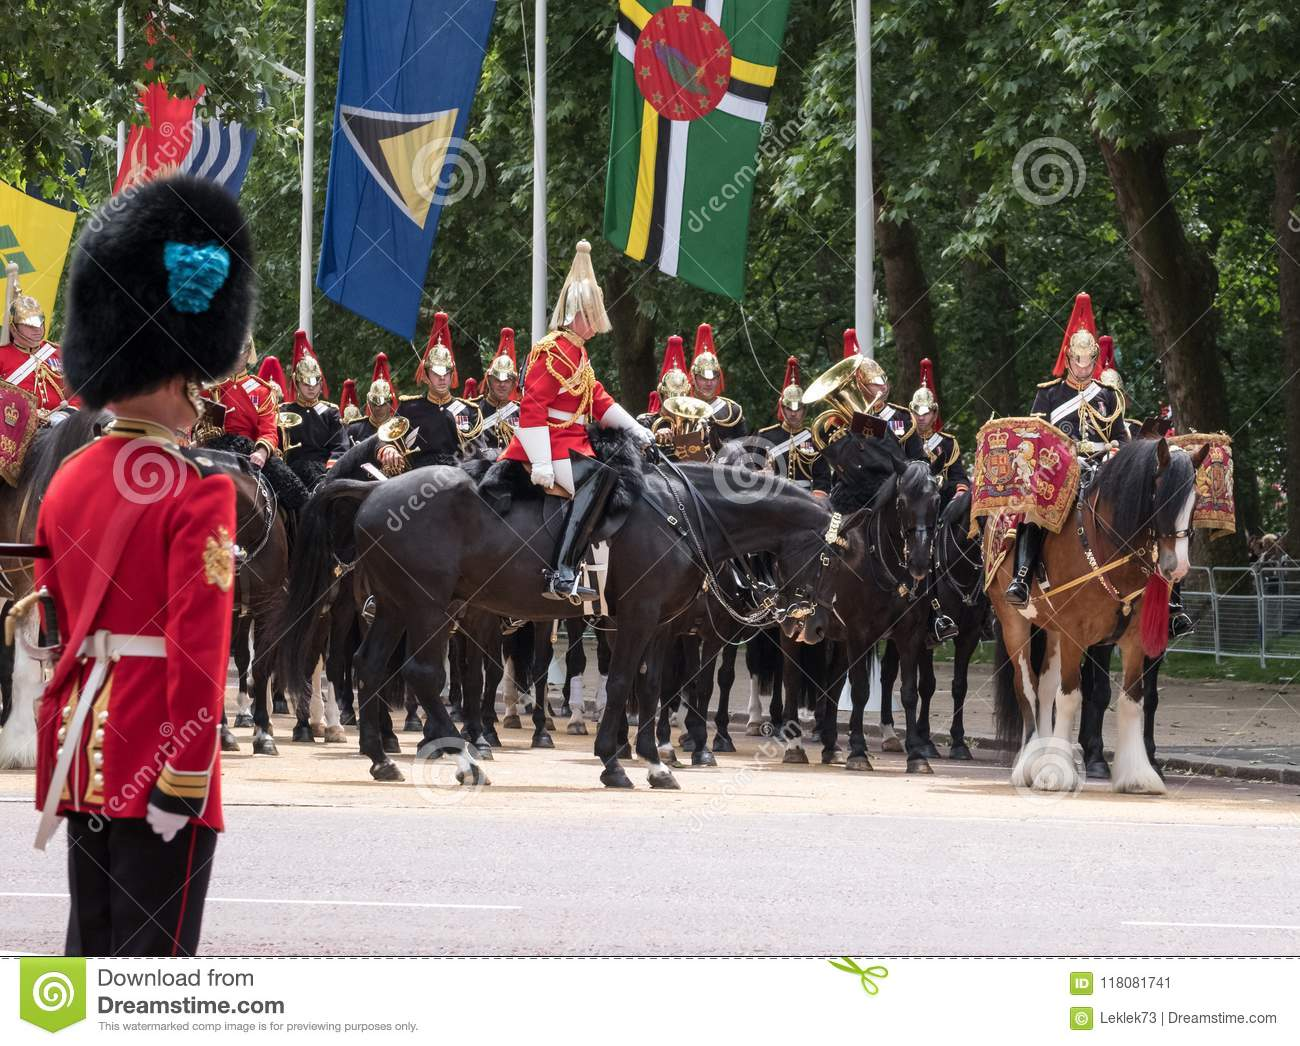 Drum horse with rider, together with Household Cavalry taking part in the Trooping the Colour military ceremony, London UK